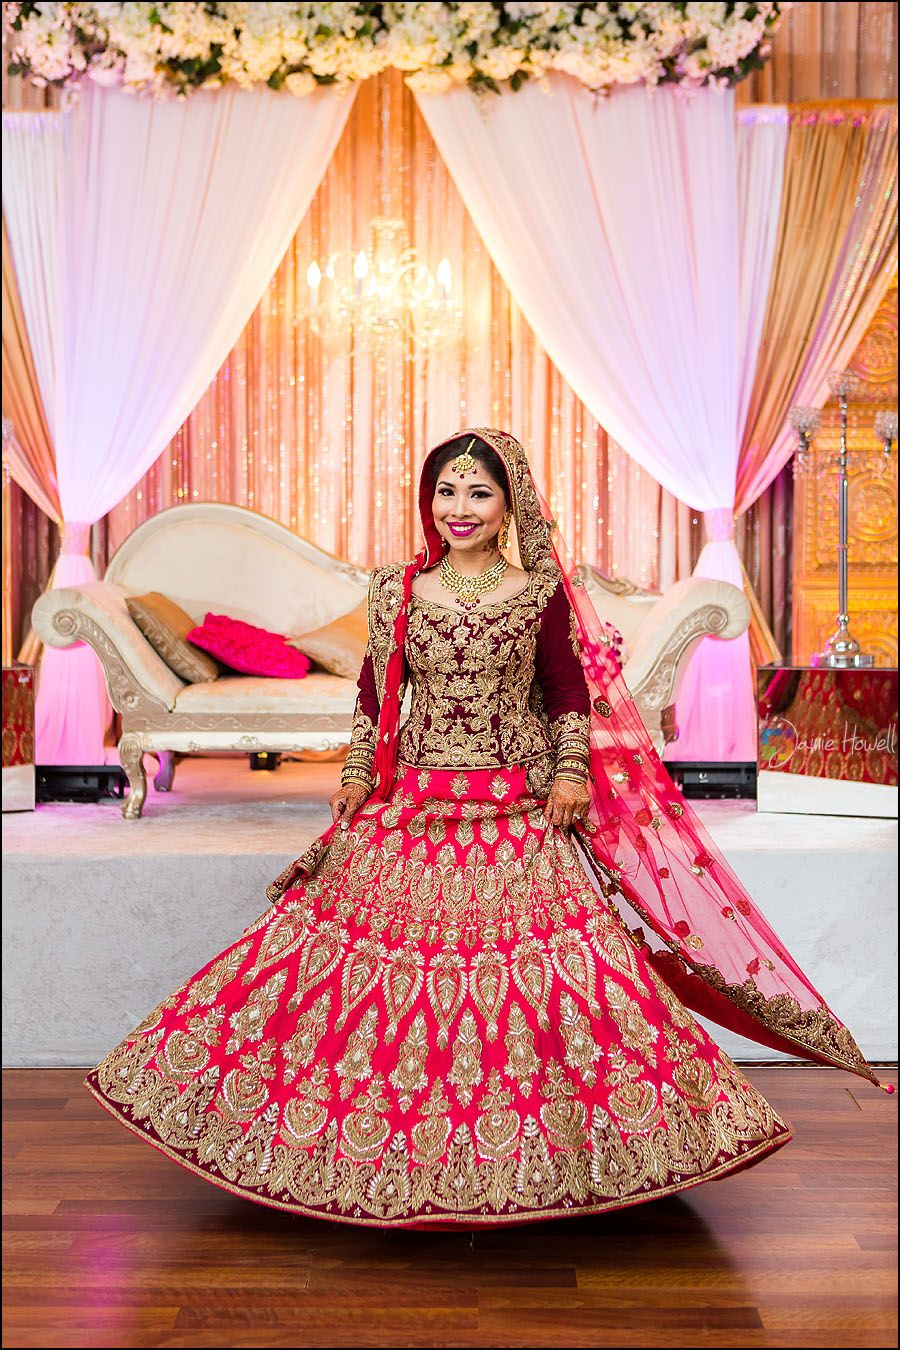 Occasions Event Hall Wedding | Embroidery | Pinterest | Traje, Amar ...